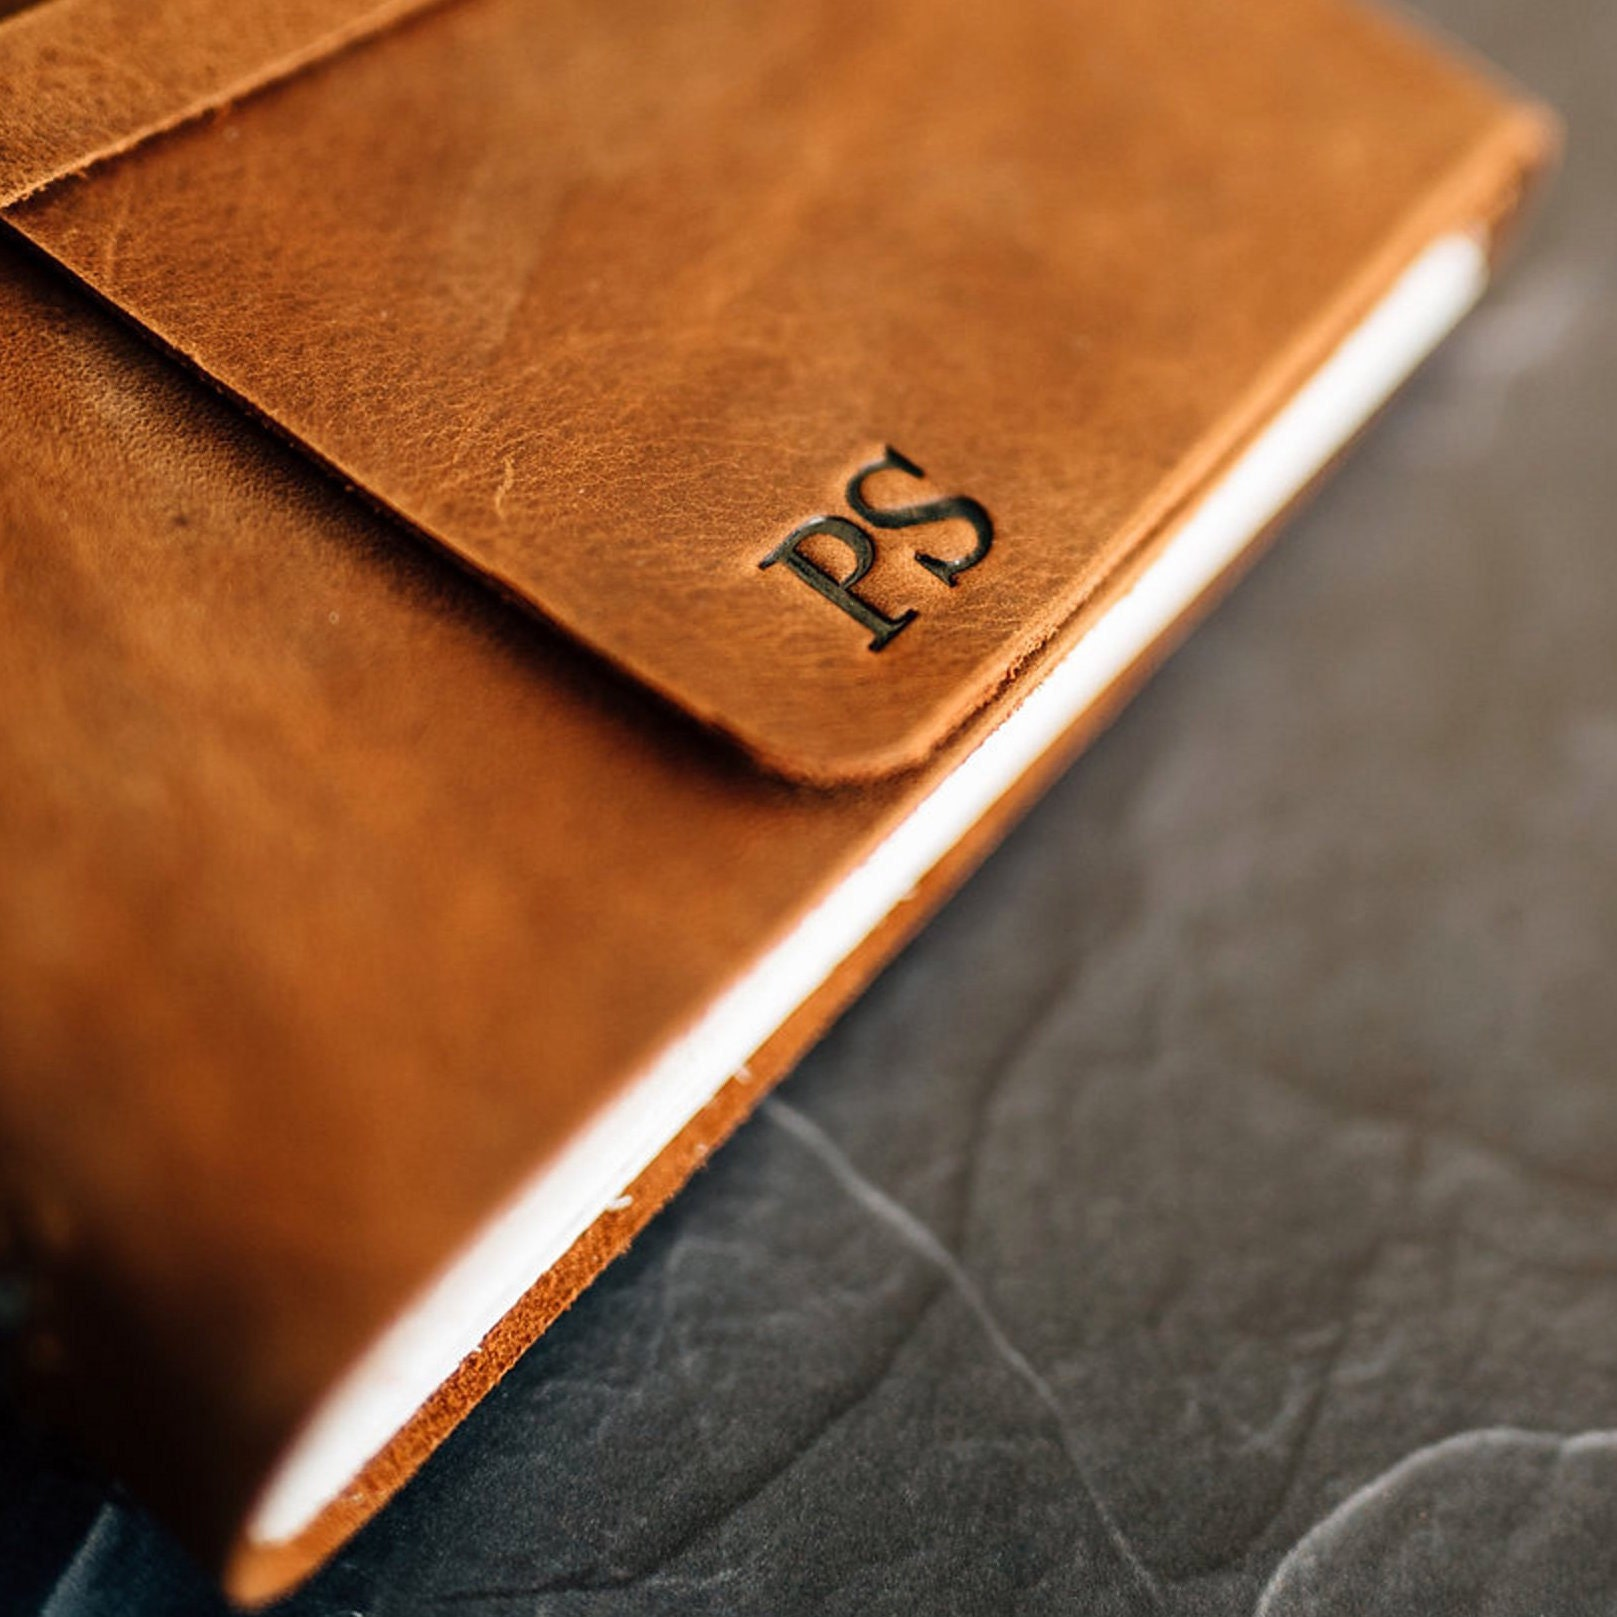 inchoo bijoux holiday gift bodyfriend forest nine leather notebook